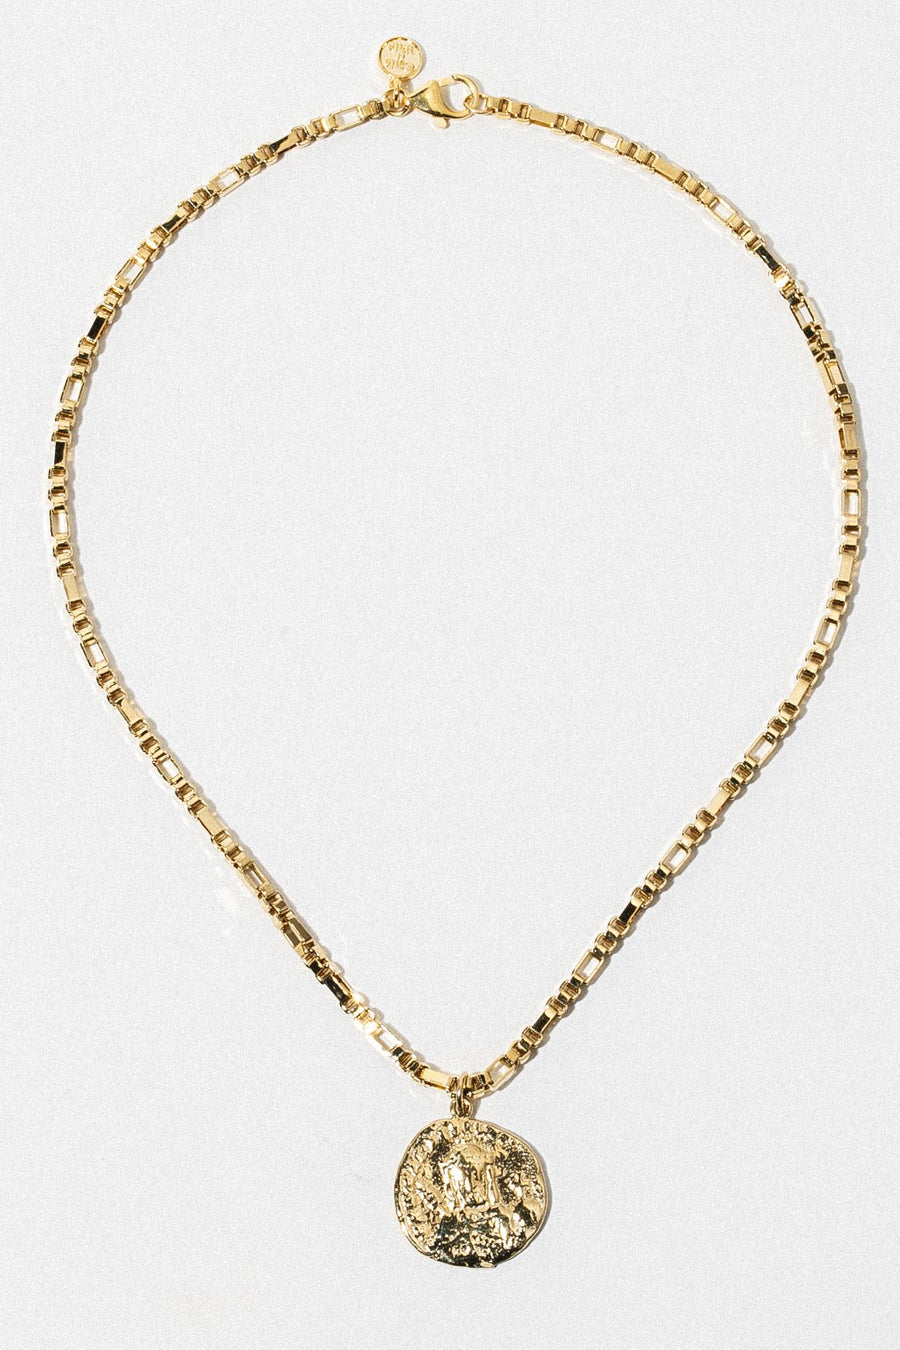 Goddess Jewelry Gold / 16 Inches nCW437